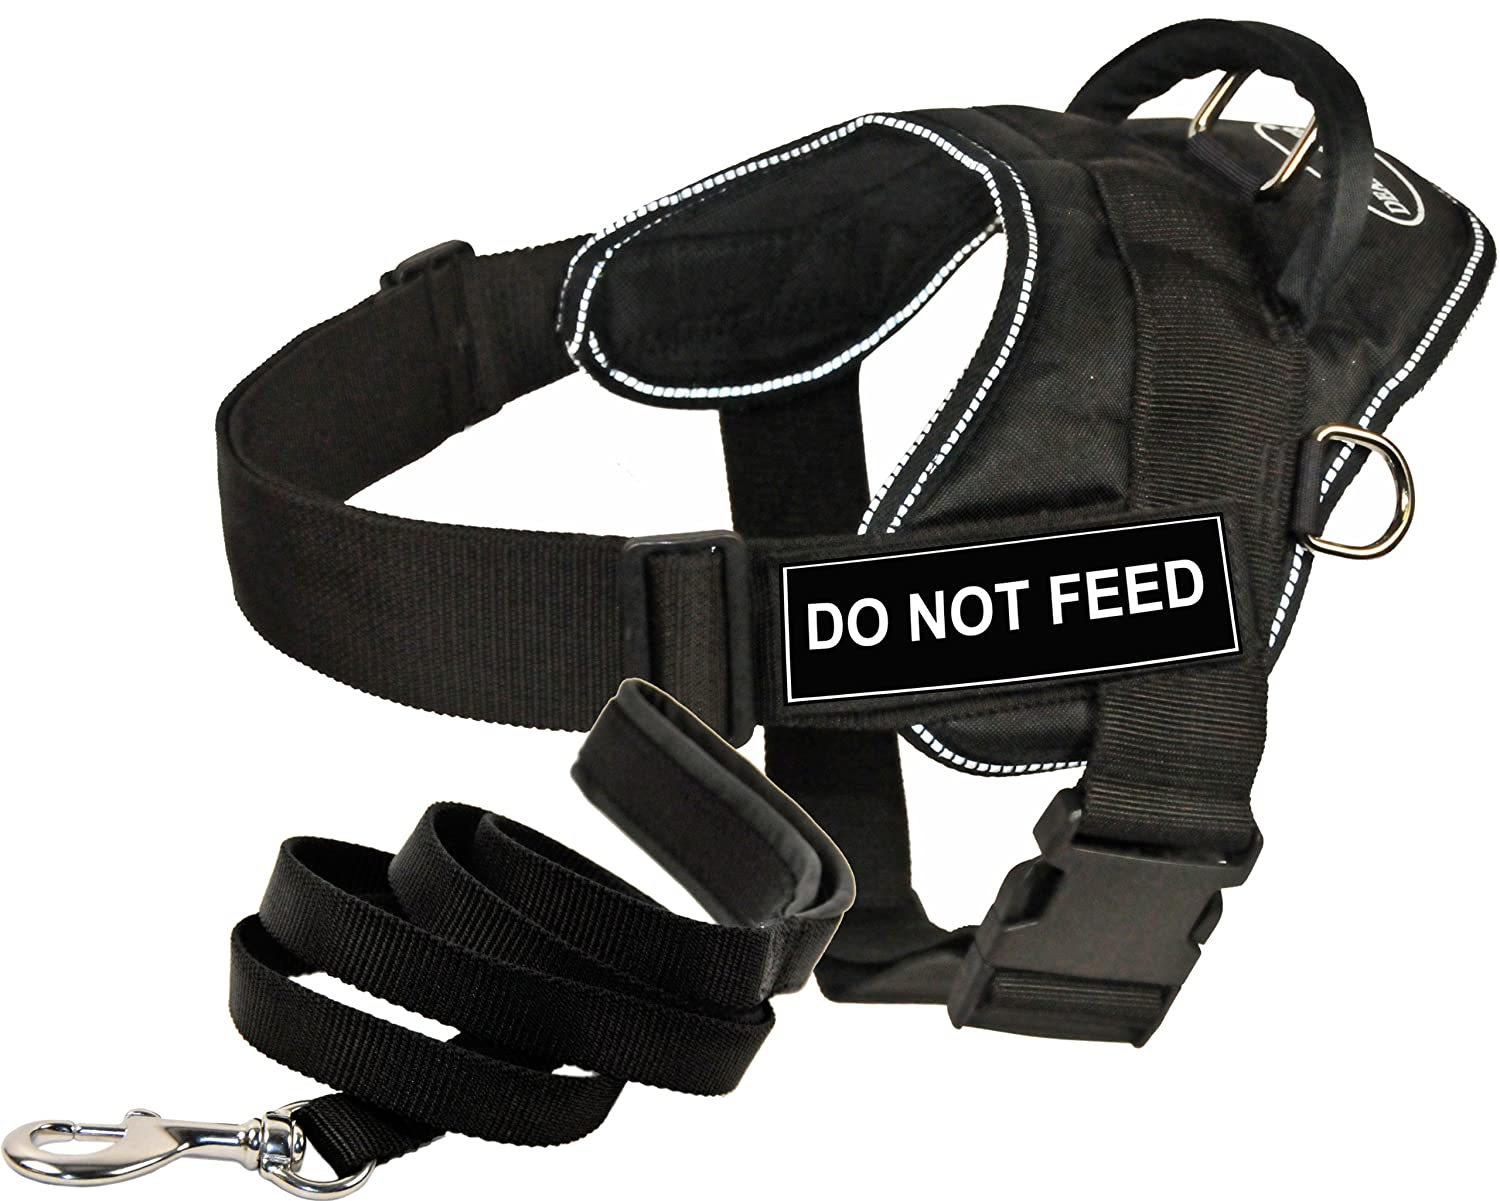 Dean & Tyler Bundle One DT Fun Works  Harness, Do Not Feed, Reflective, Small (22-27-Inch) + One Padded Puppy  Leash, 6-Feet Stainless Snap, Black